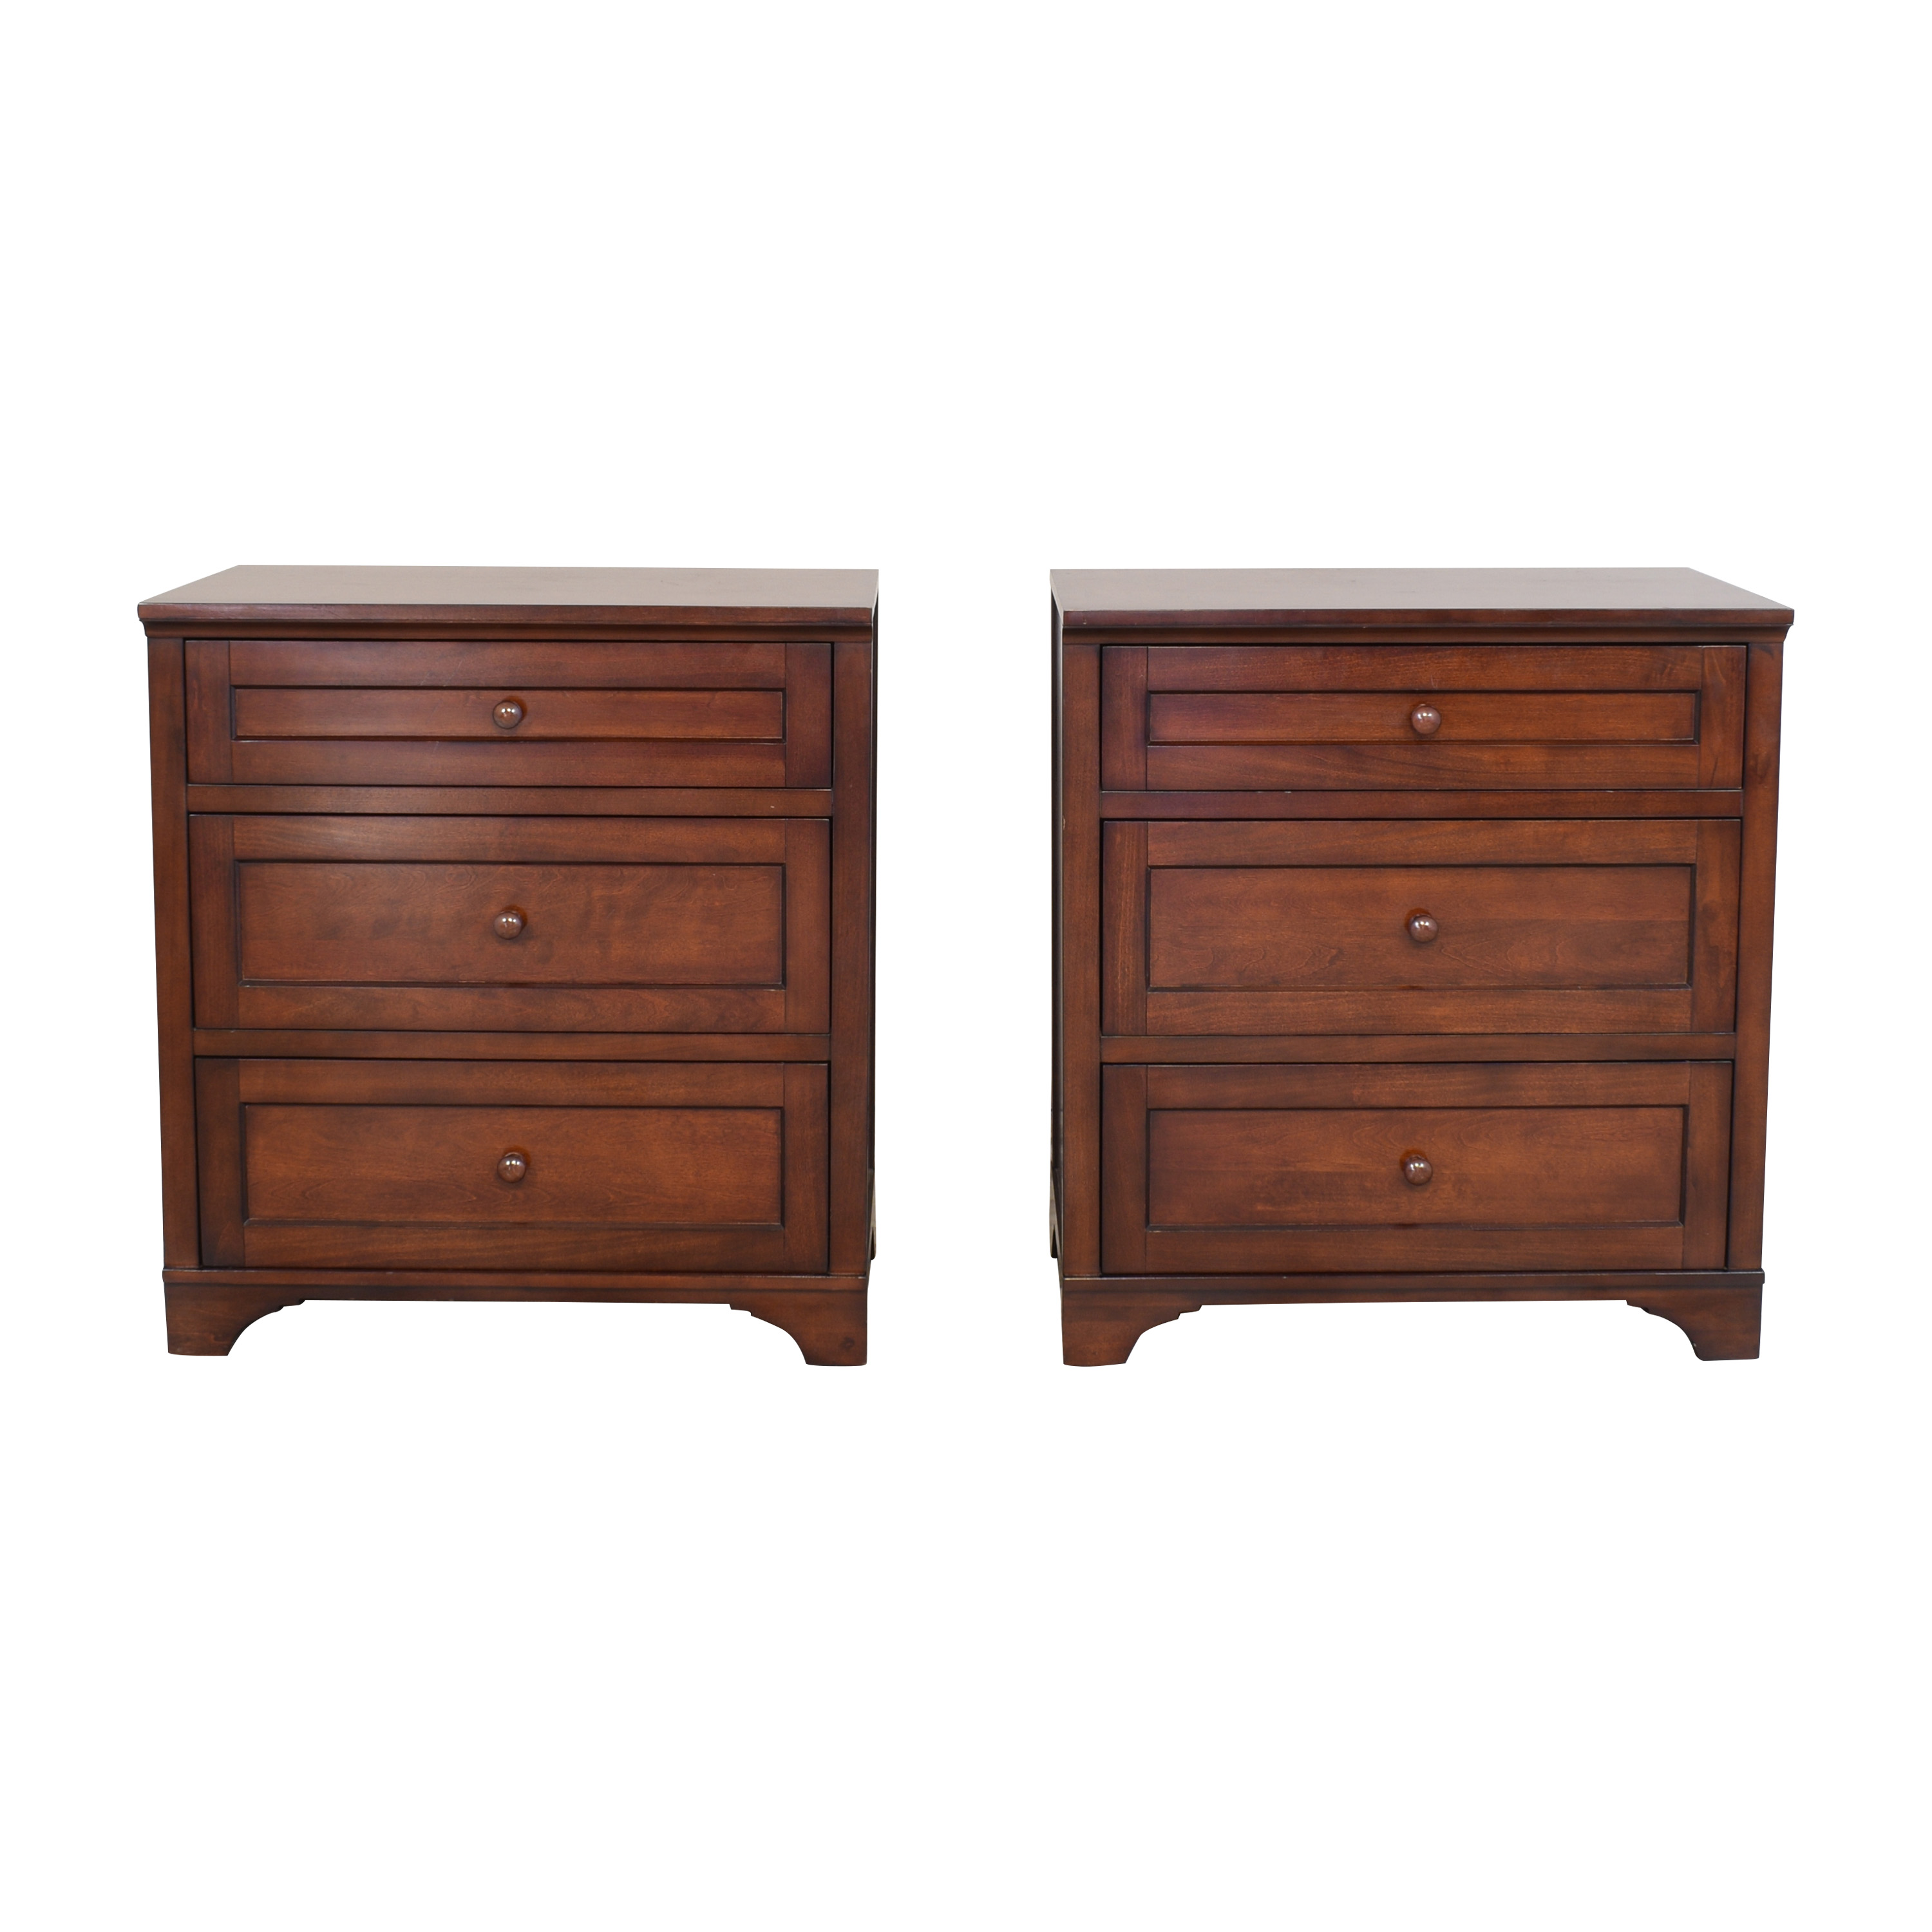 Pottery Barn Three Drawer Nightstands / End Tables